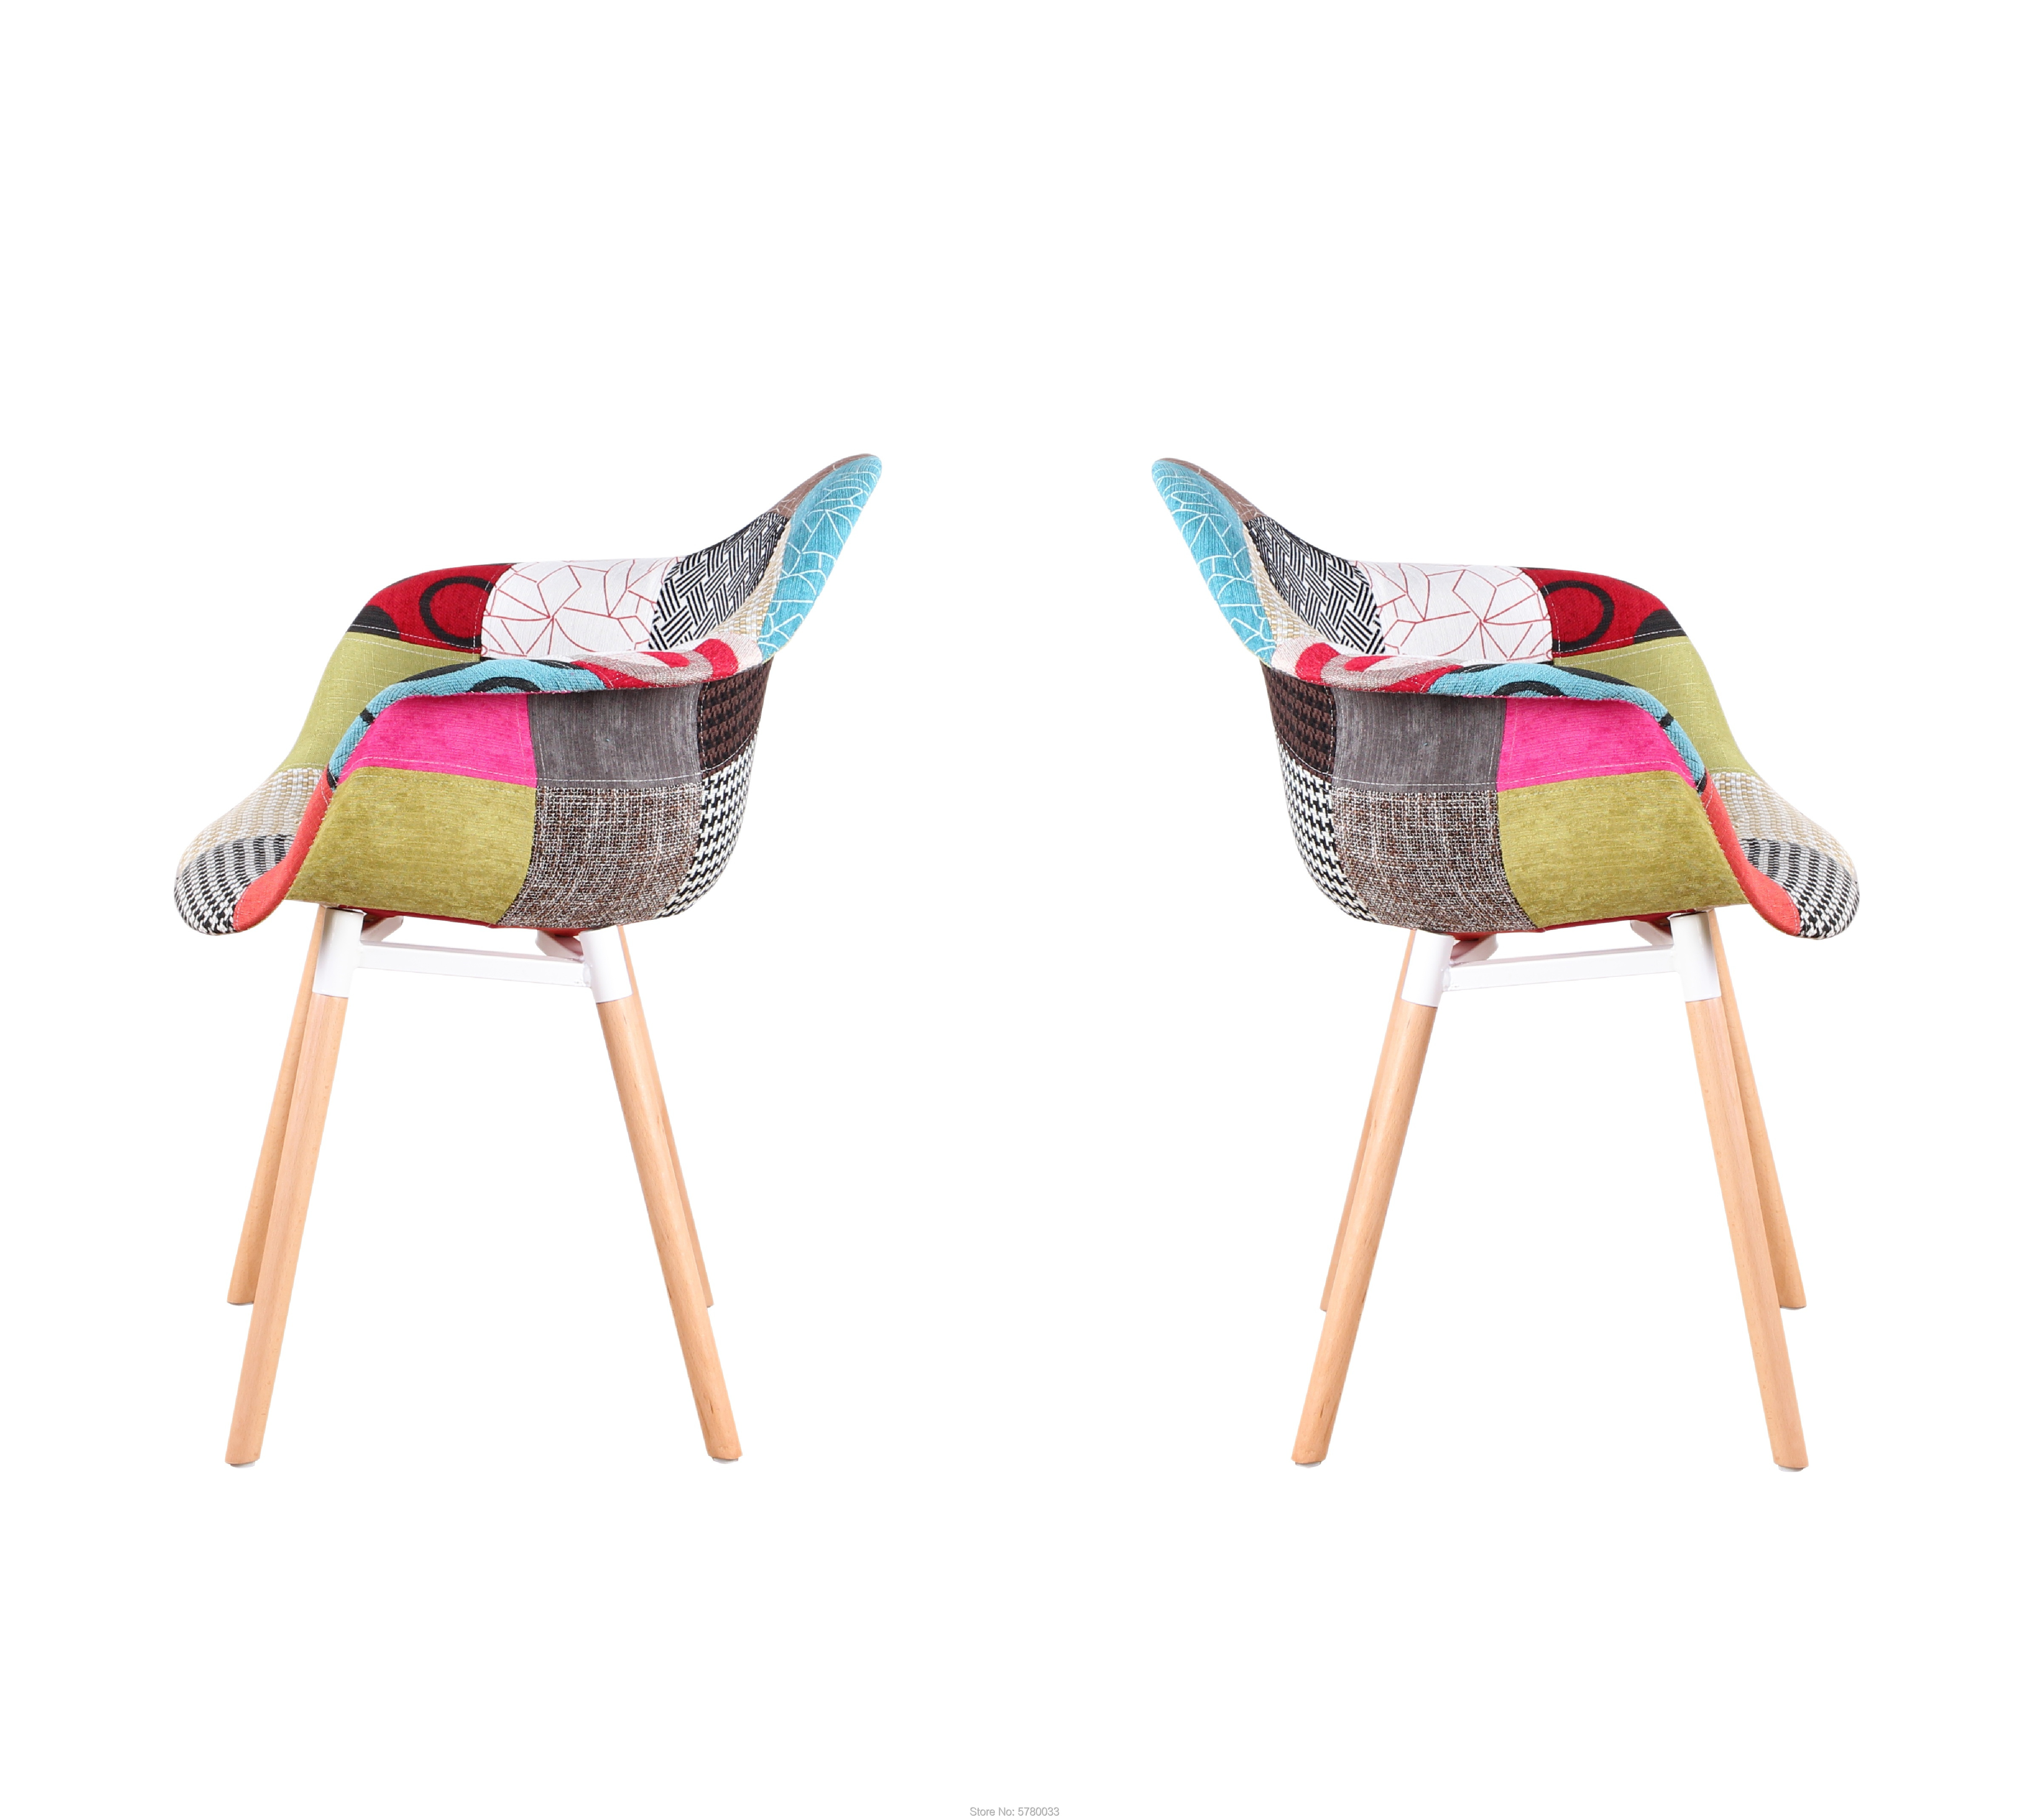 A Set Of 2 Medieval Art Style Dining Chairs With Beautiful And Durable Patchwork Pattern, Suitable For Living Room Dining Room